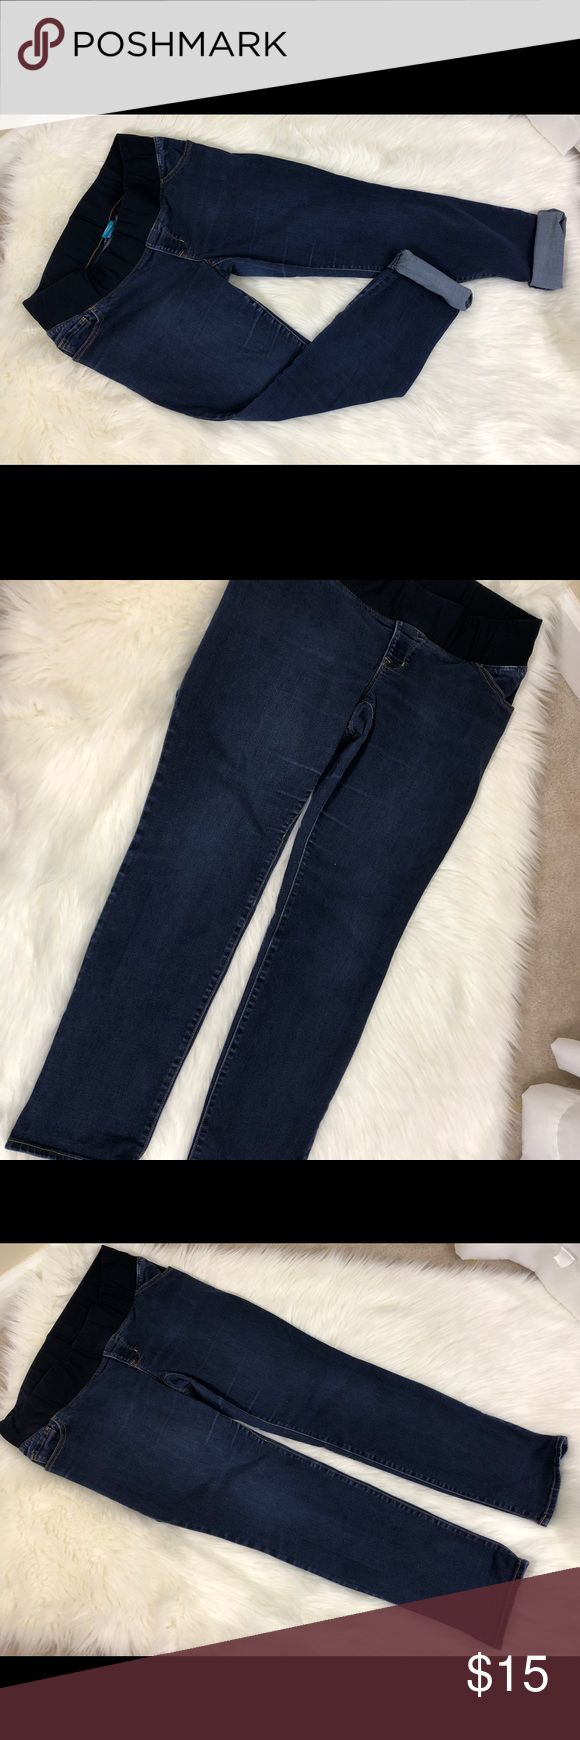 "Old Navy Maternity Jeans Old Navy denim maternity jeans. Size 12.  Skinny low rise.  Knit panel. Inseam approximately 29"".'  EUC Old Navy Jeans Skinny"